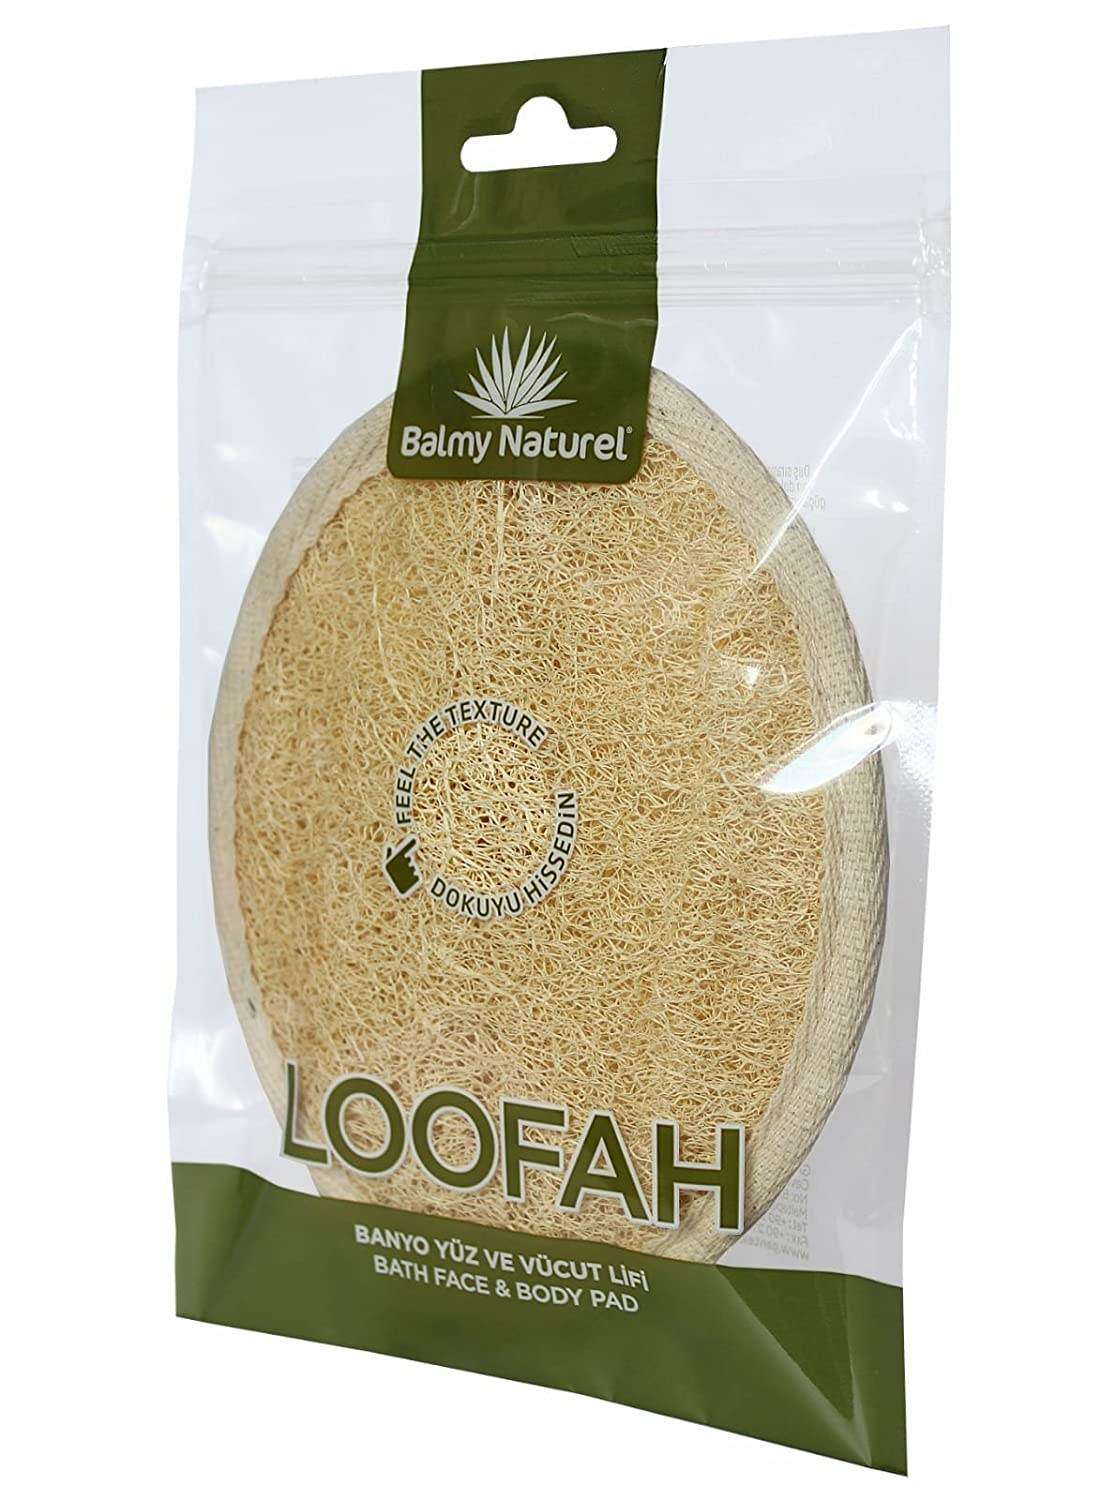 BALMY NATUREL - LOOFAH BATH FACE AND BODY PAD - Exfoliating Loofah Pad 100% Natural Luffa and Terry Cloth Materials Loofa Sponge Scrubber Brush Close Skin For Men and Women When Bath Spa and Shower